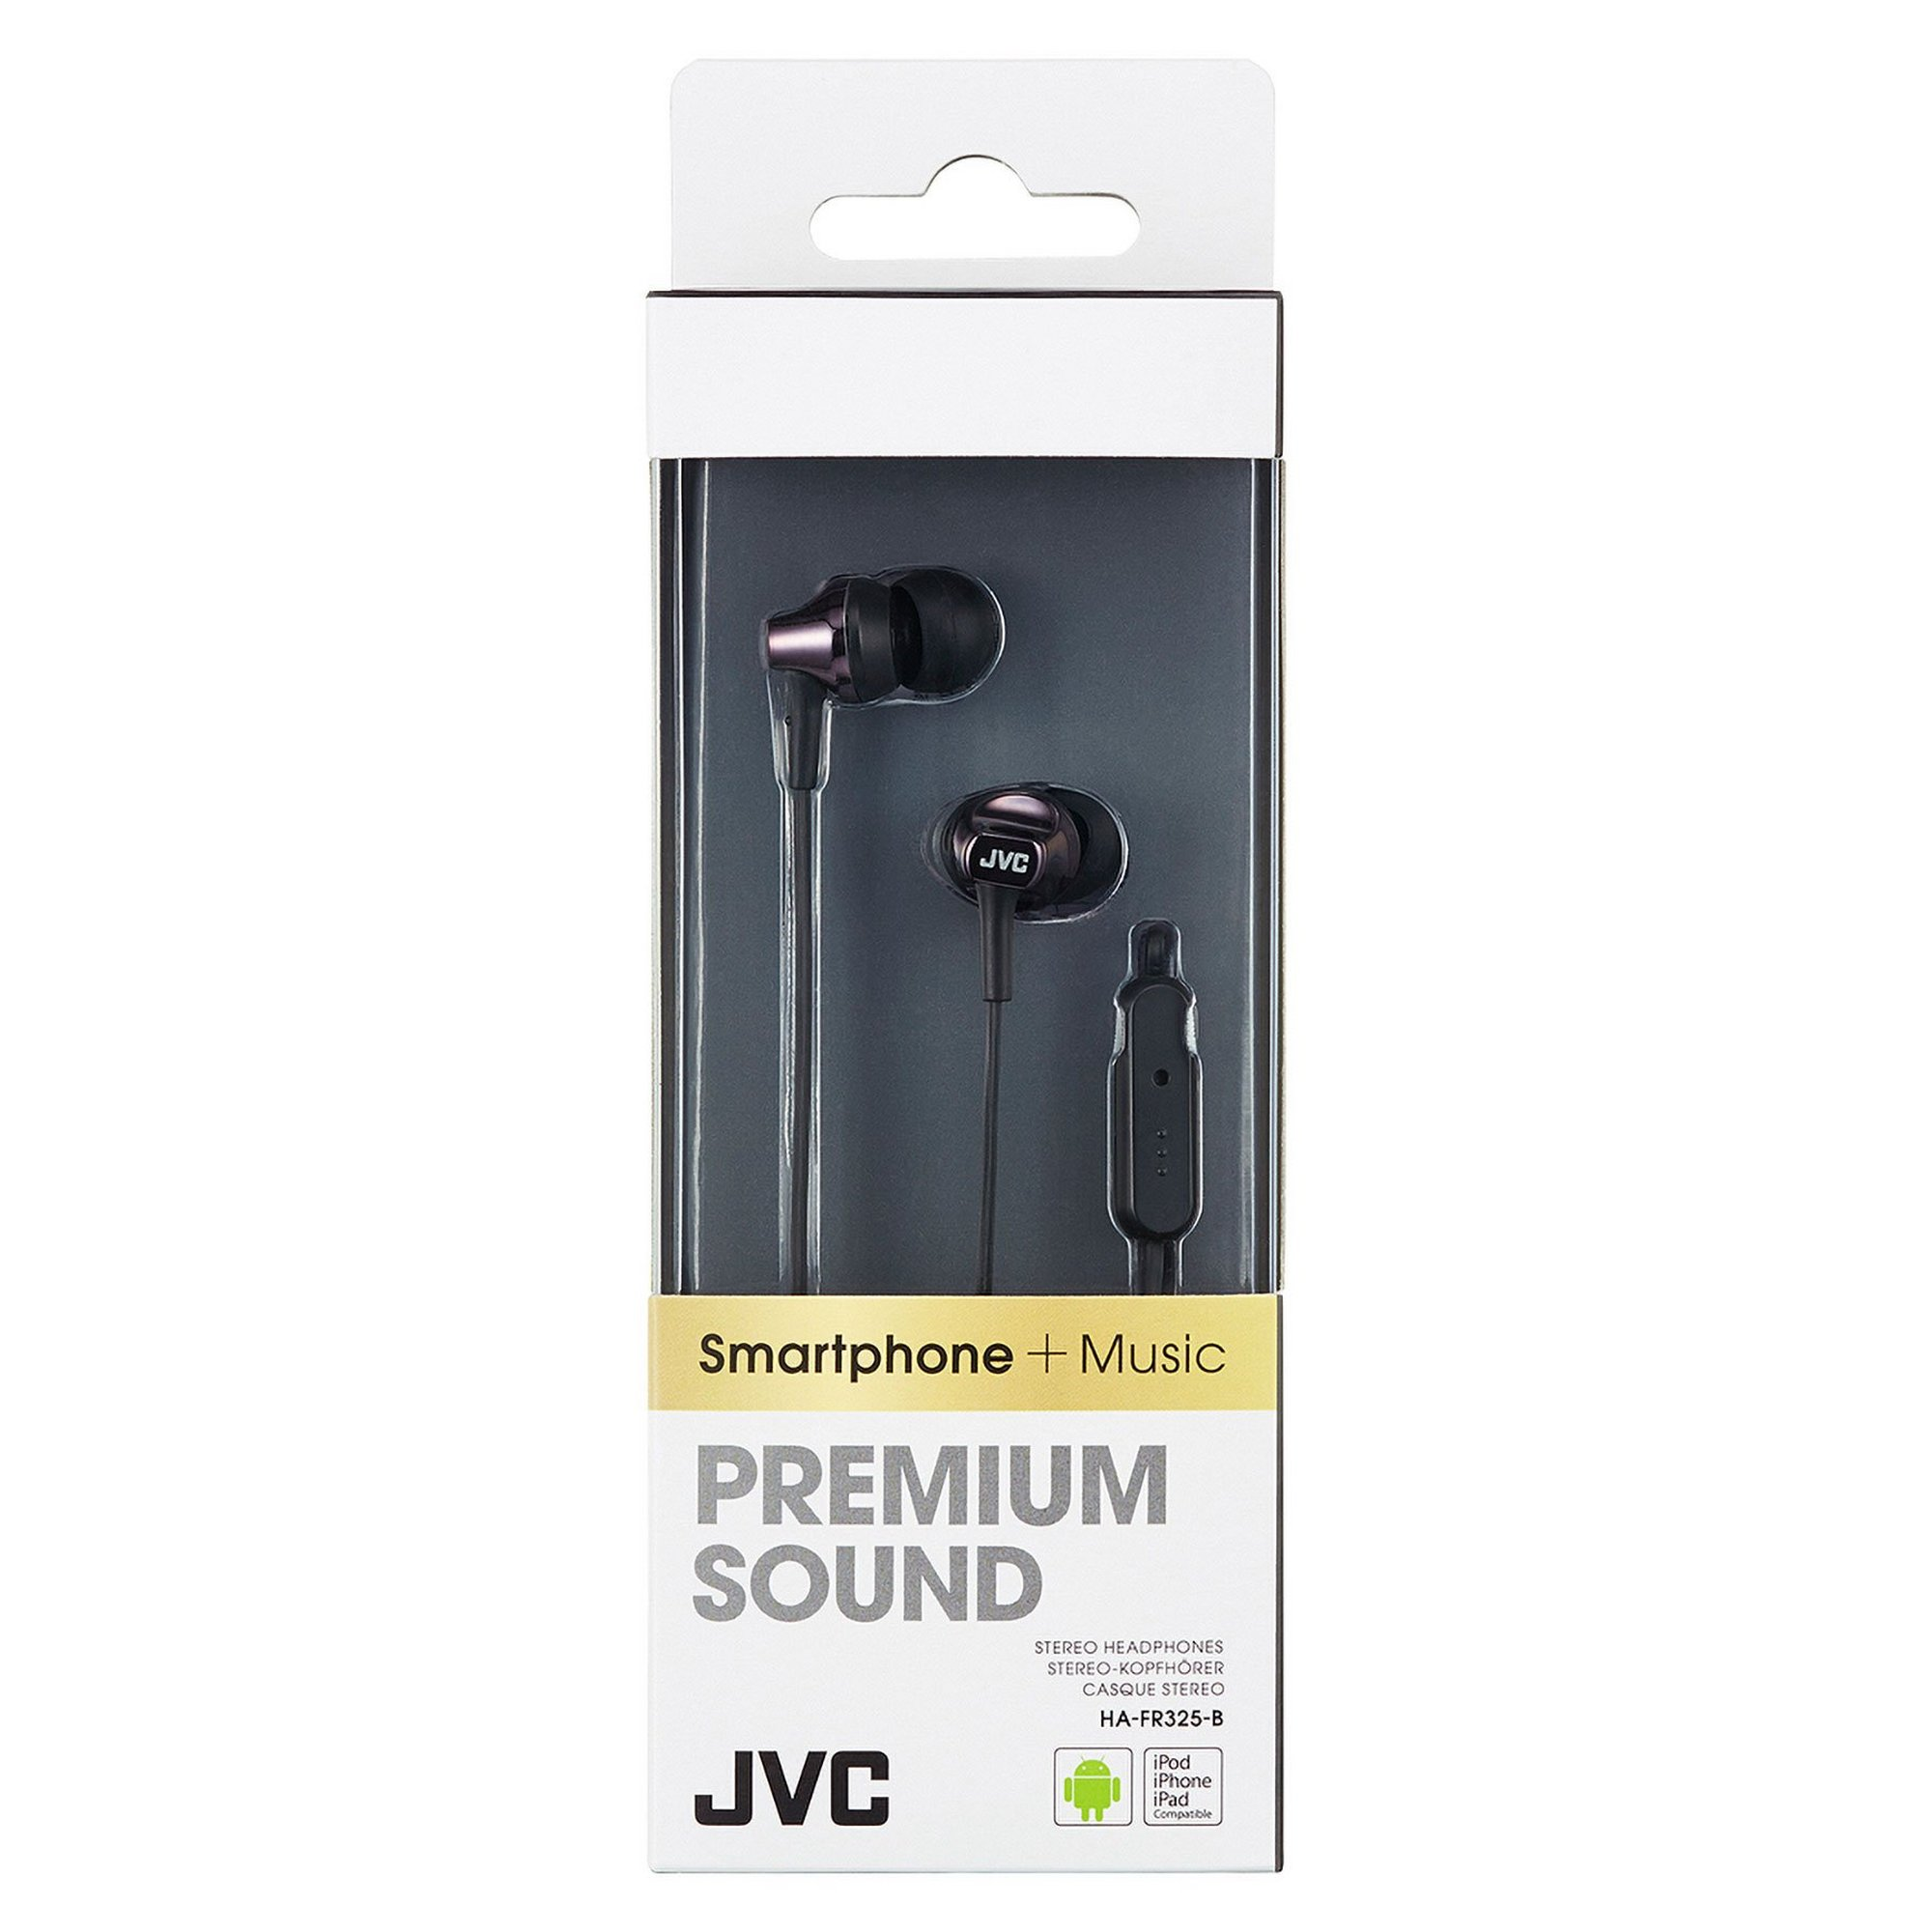 Image of JVC Premium Sound Earphones with Remote and Mic